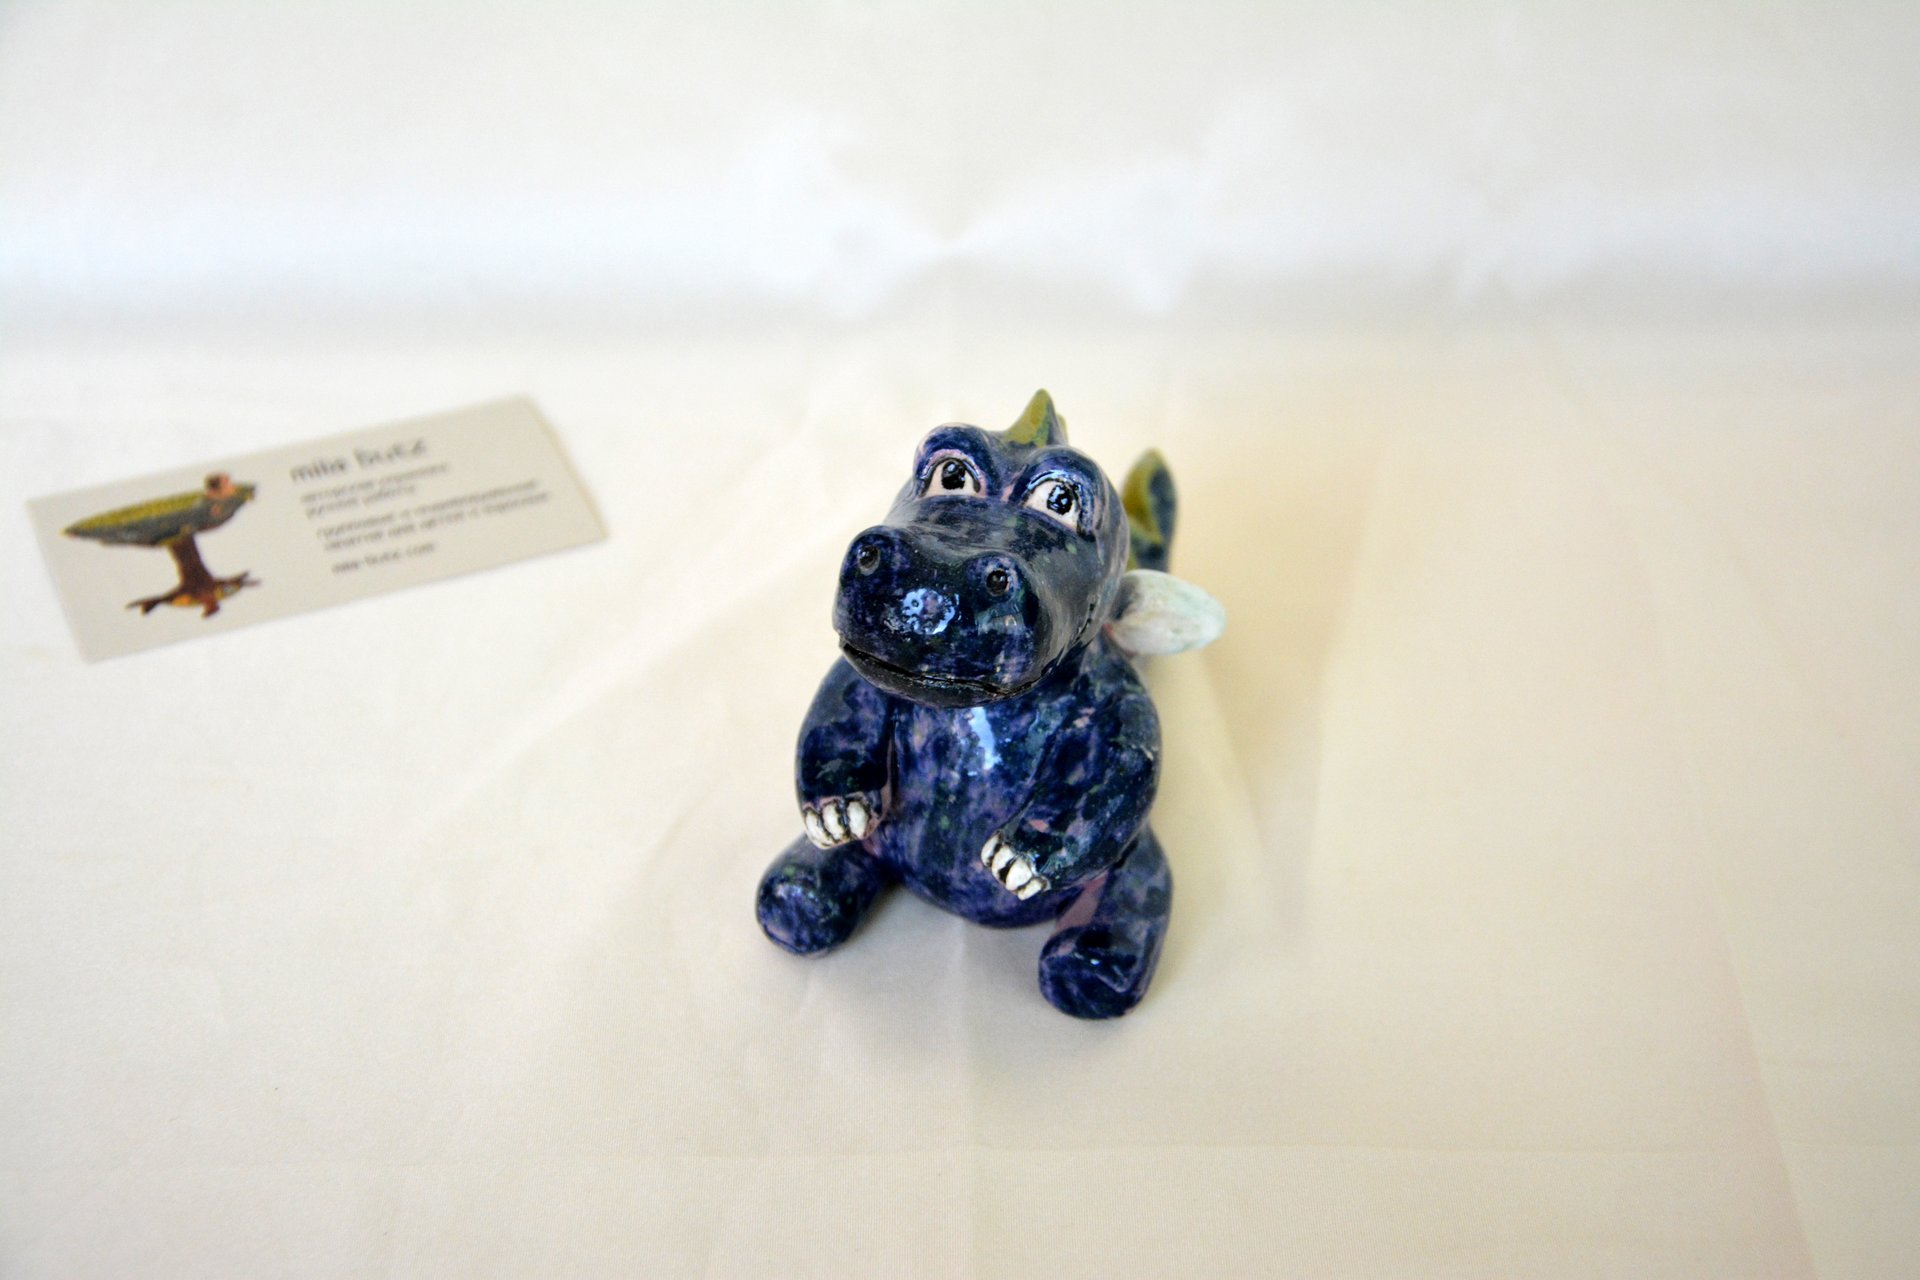 Little Dragon - Ceramic other figures, height - 8 cm, photo 2 of 3.